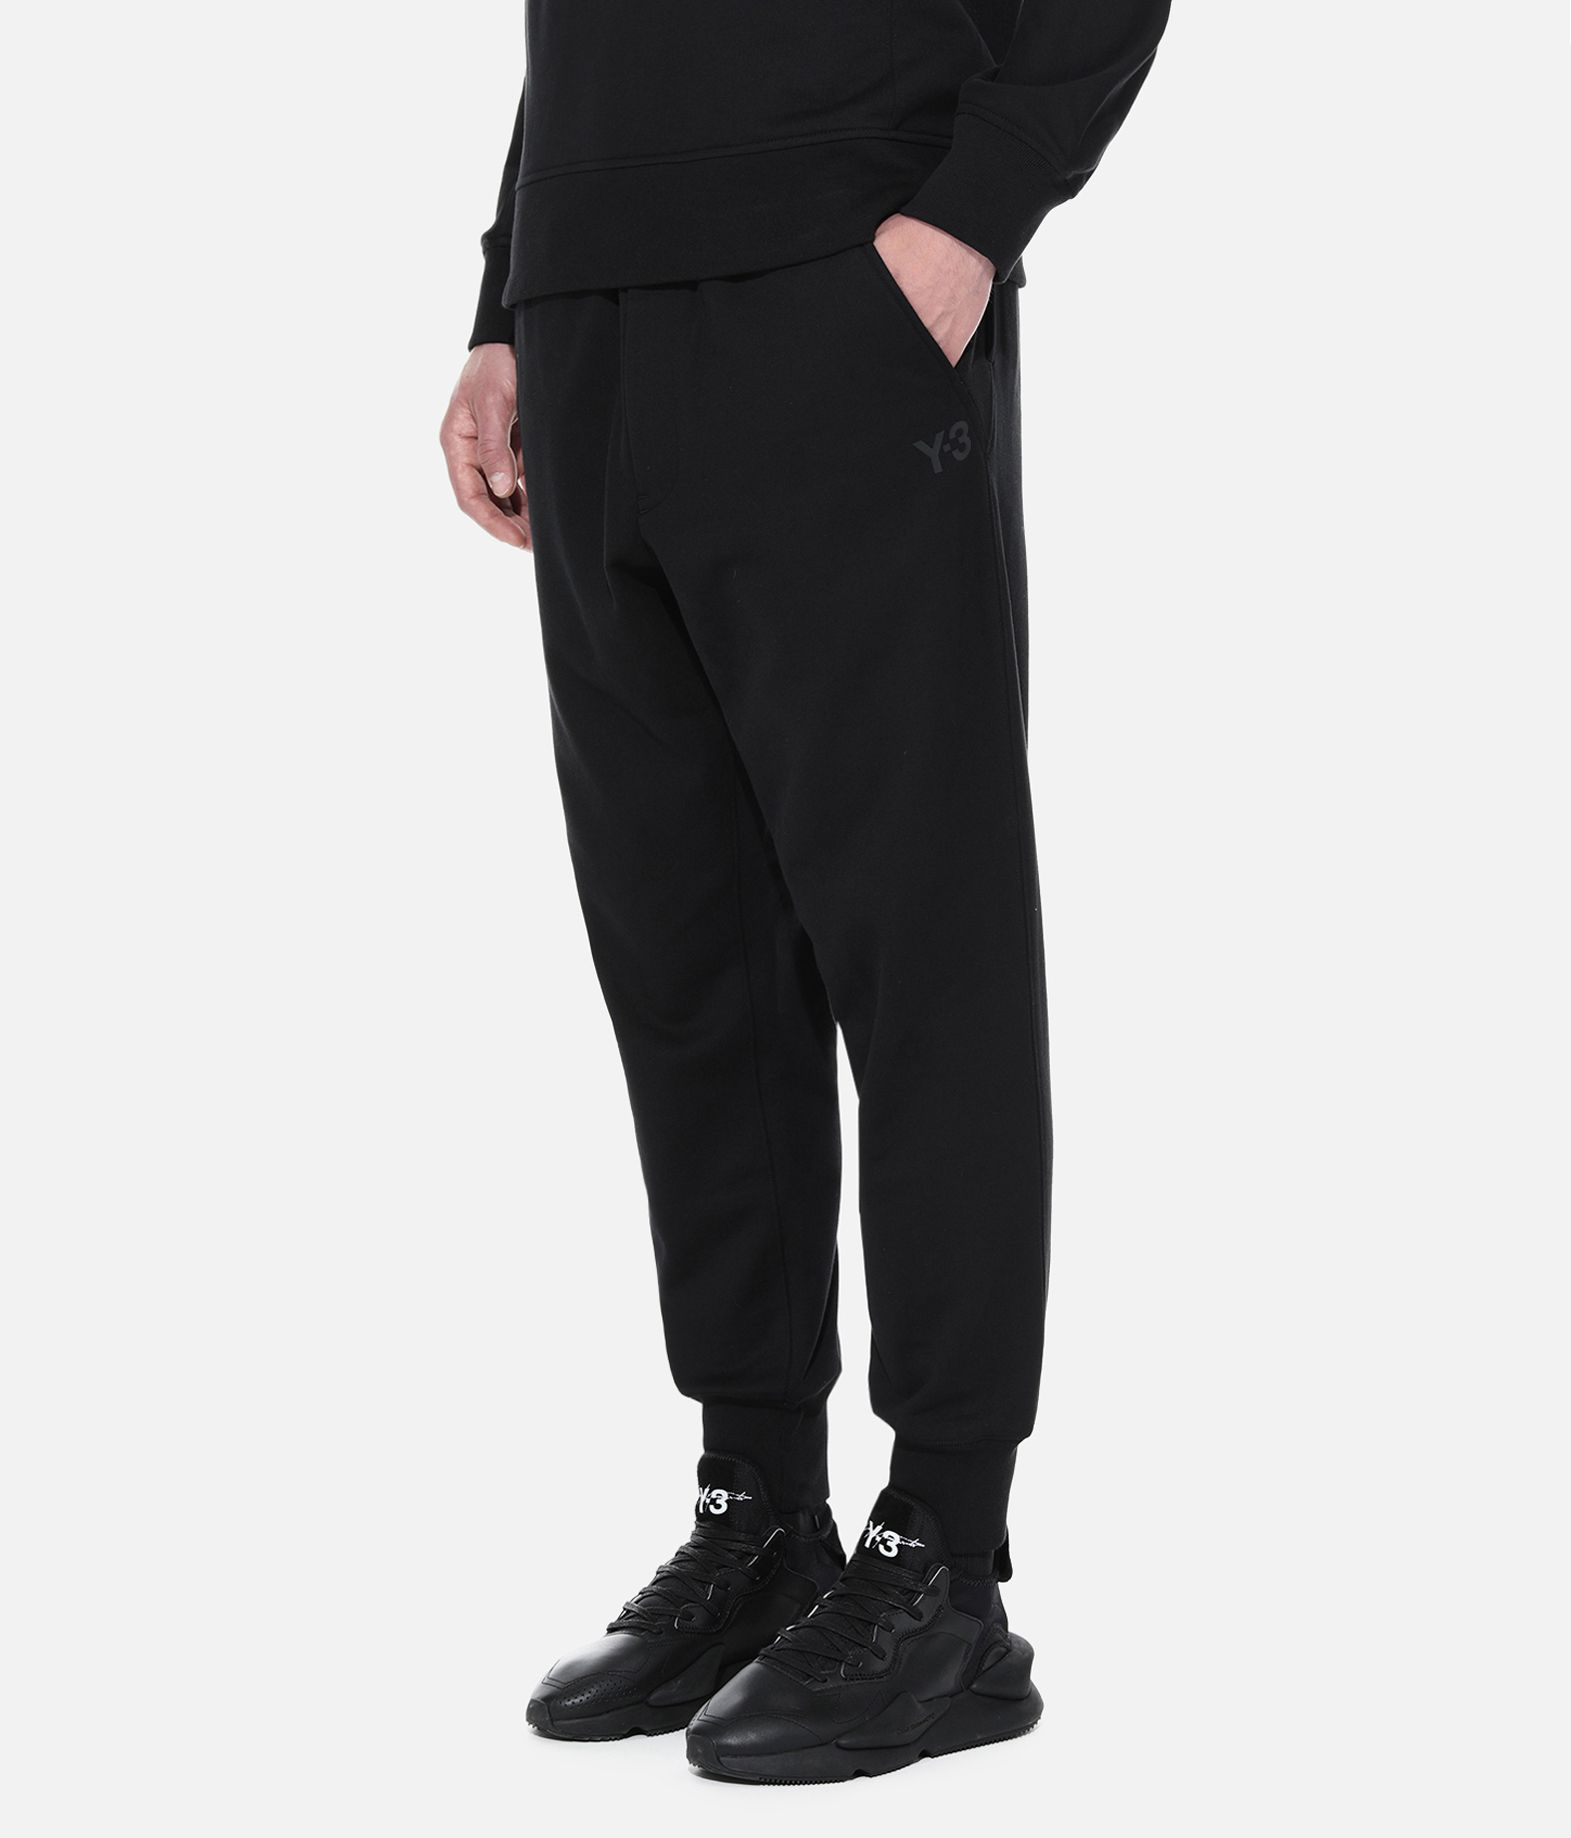 Y-3 Y-3 Classic Cuffed Pants Casual pants Man e